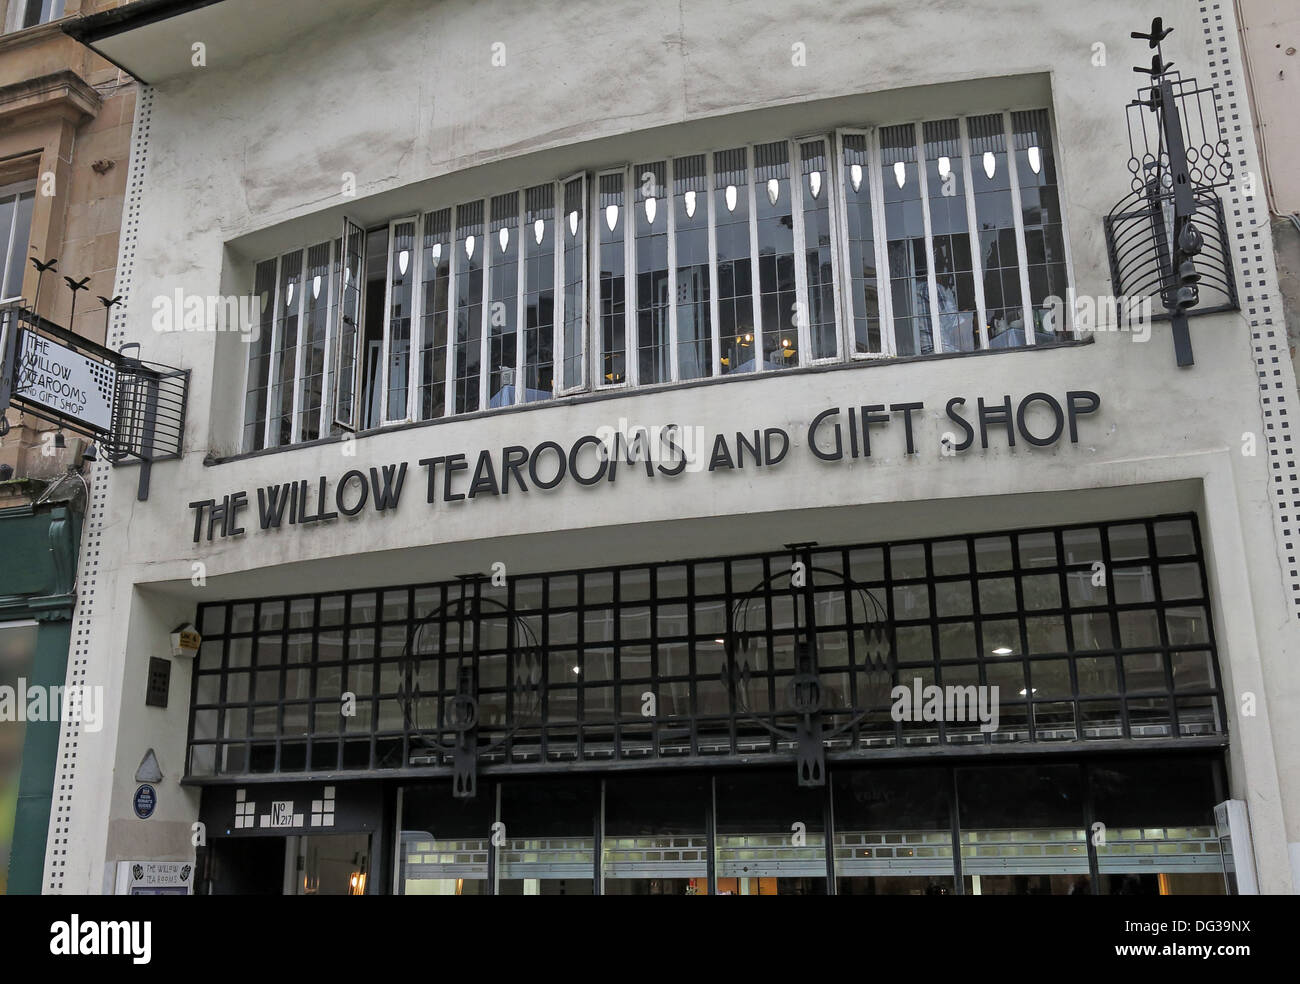 The Willow Tearooms and Gift Shop , Glasgow, Scotland UK - Stock Image